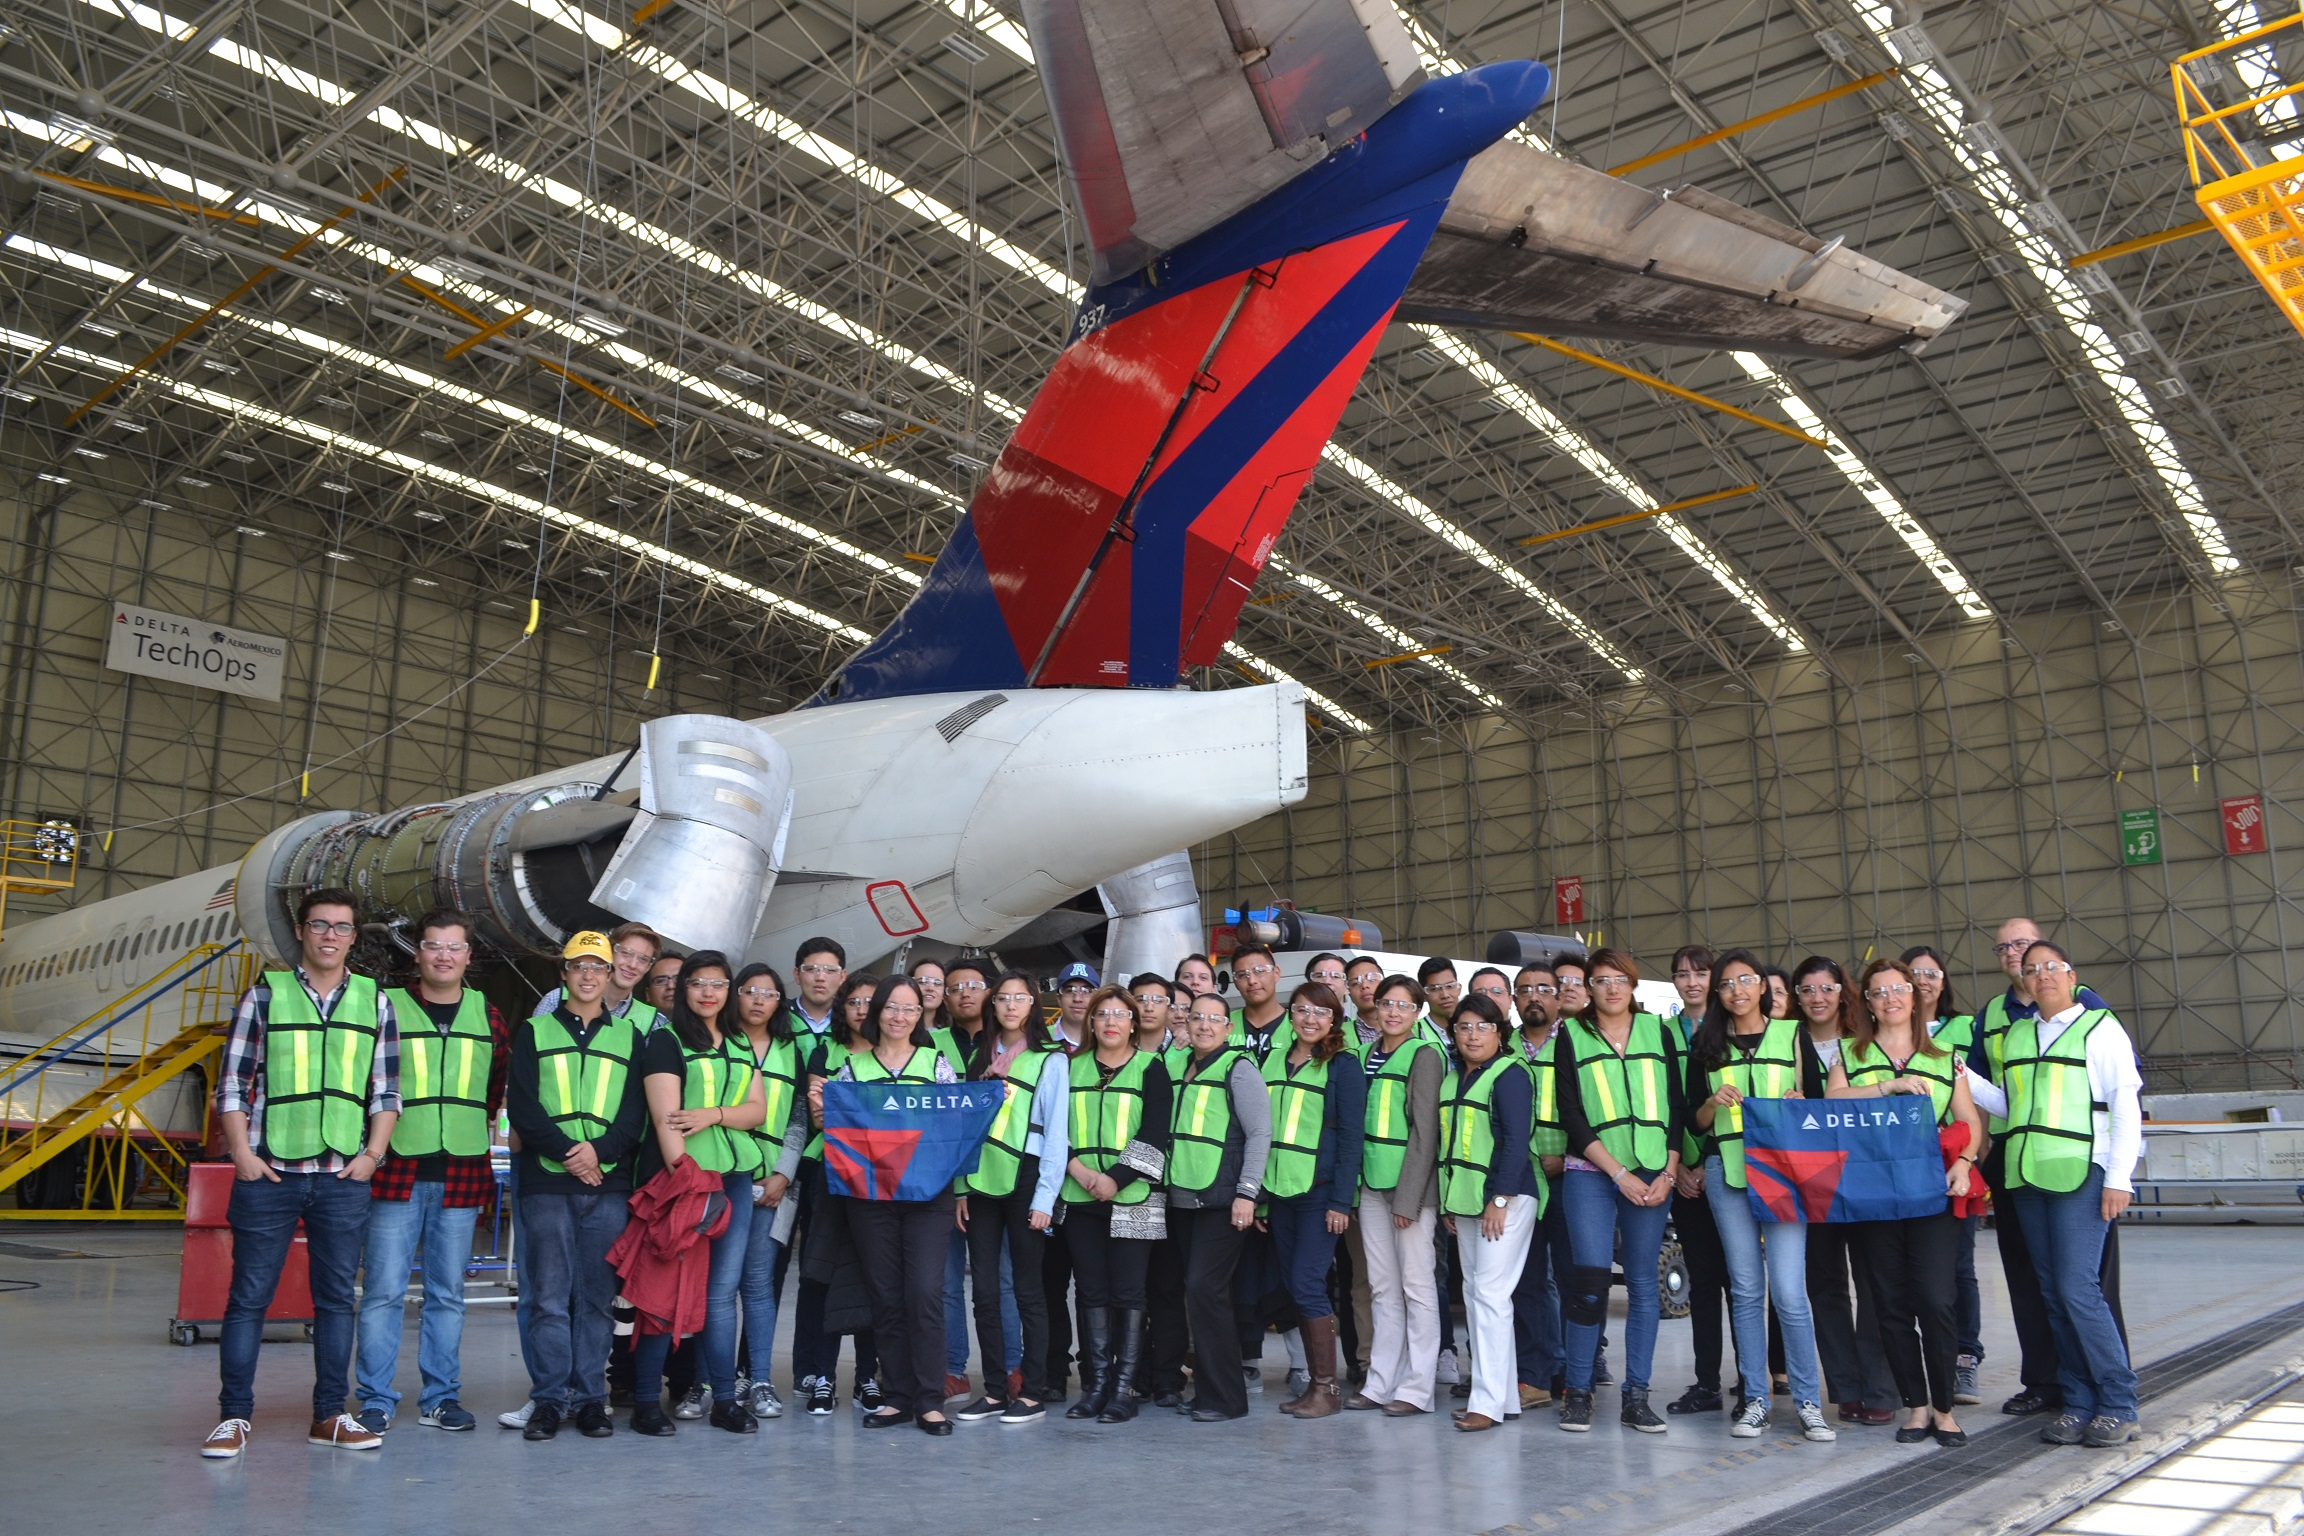 Students group with Delta plane